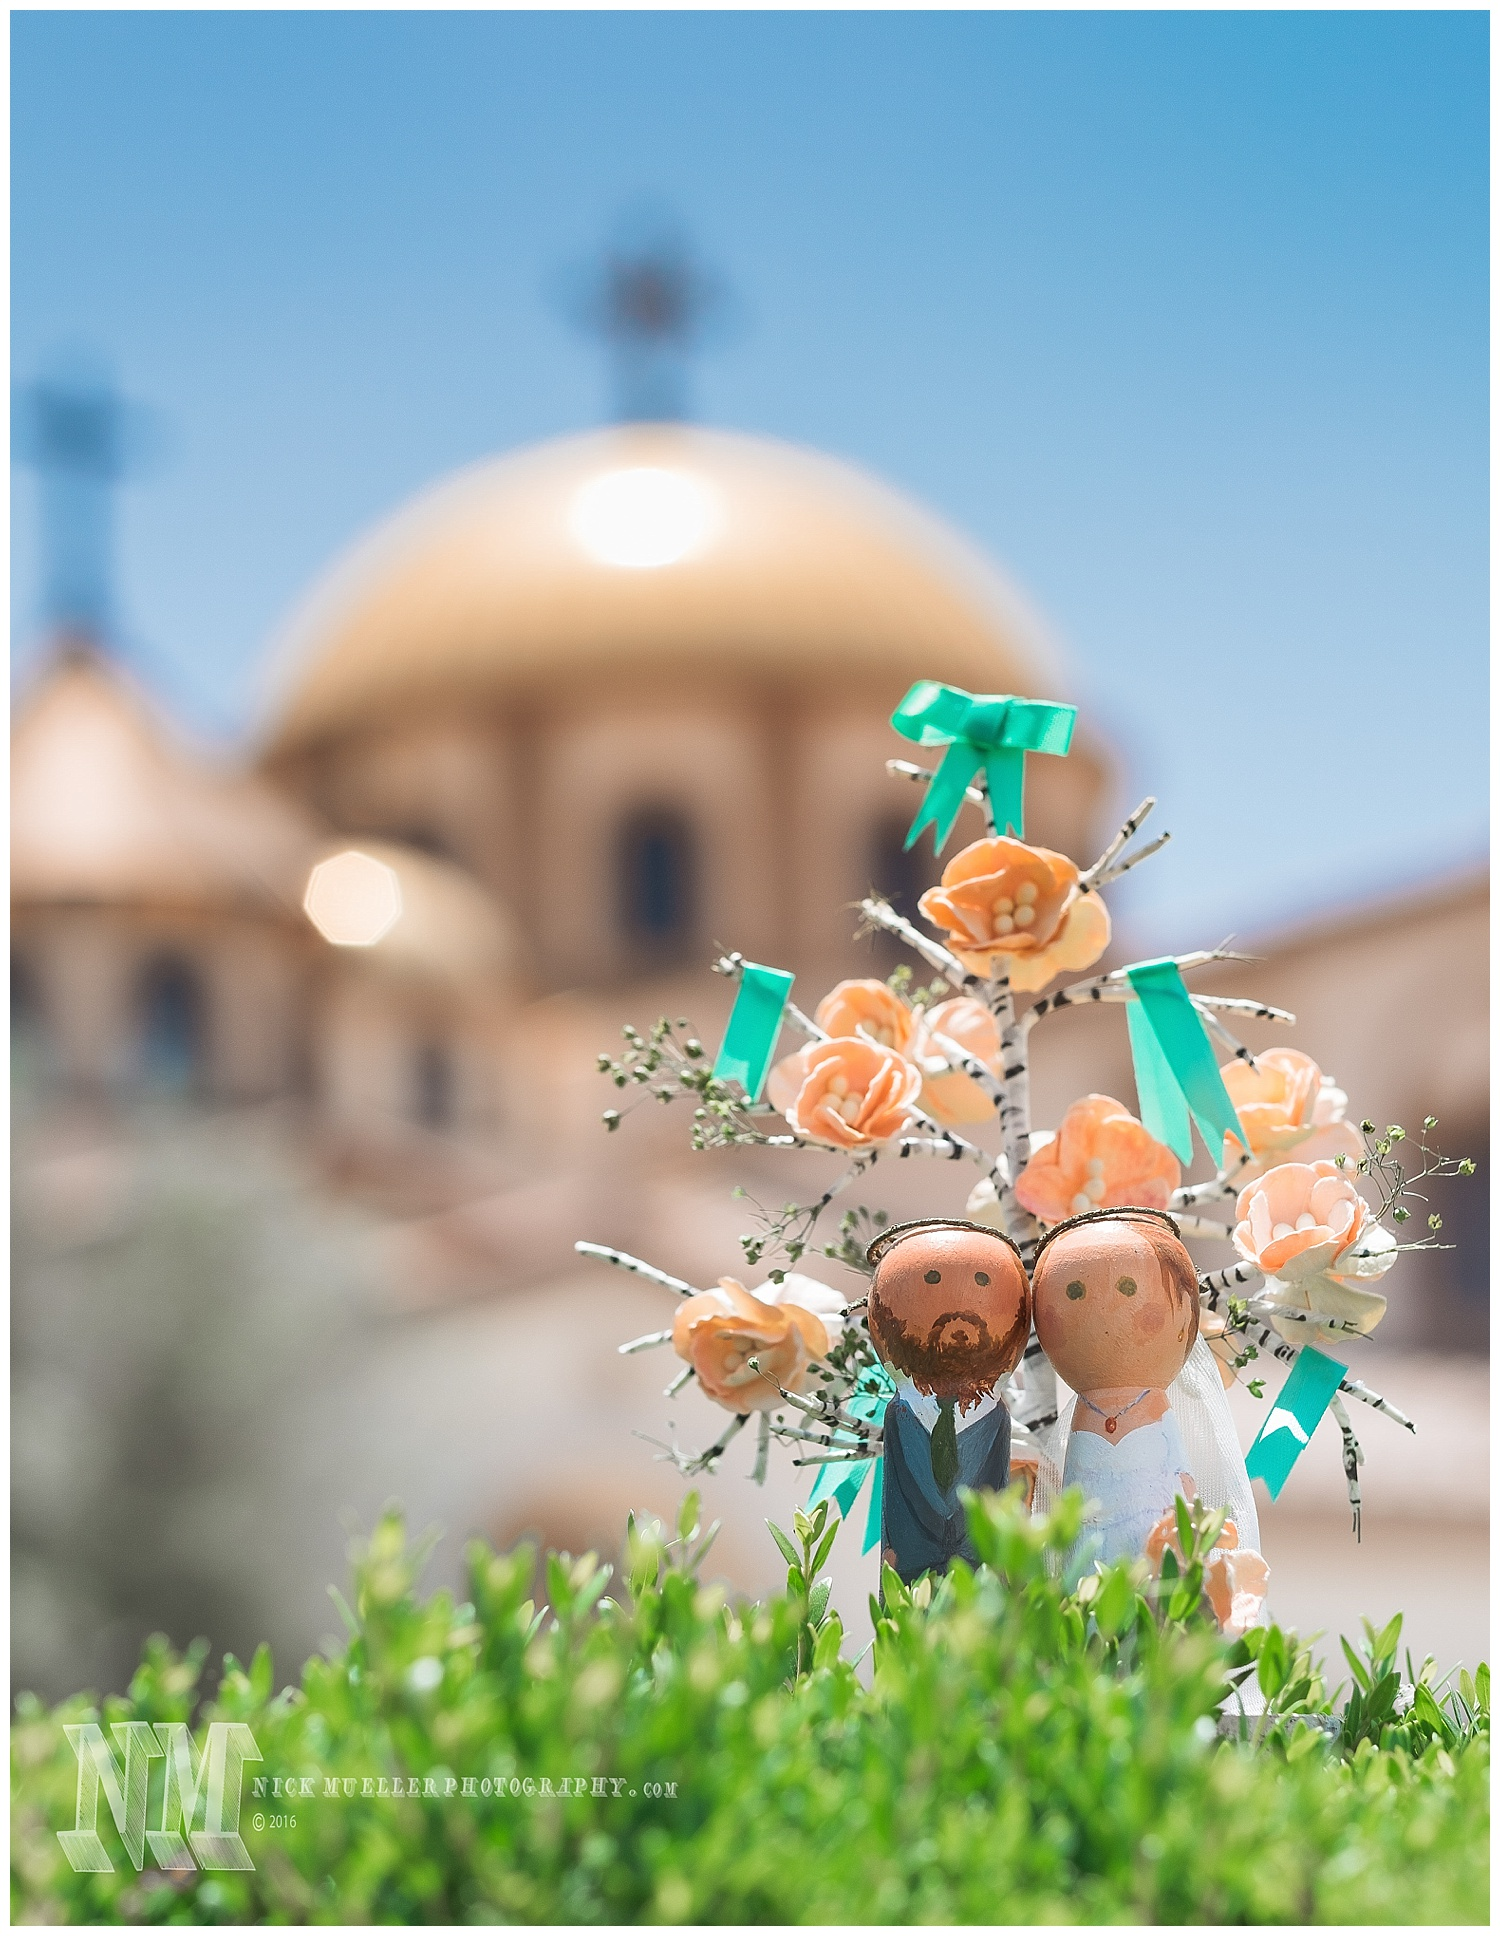 Cake Ornament with Church Domes in Background